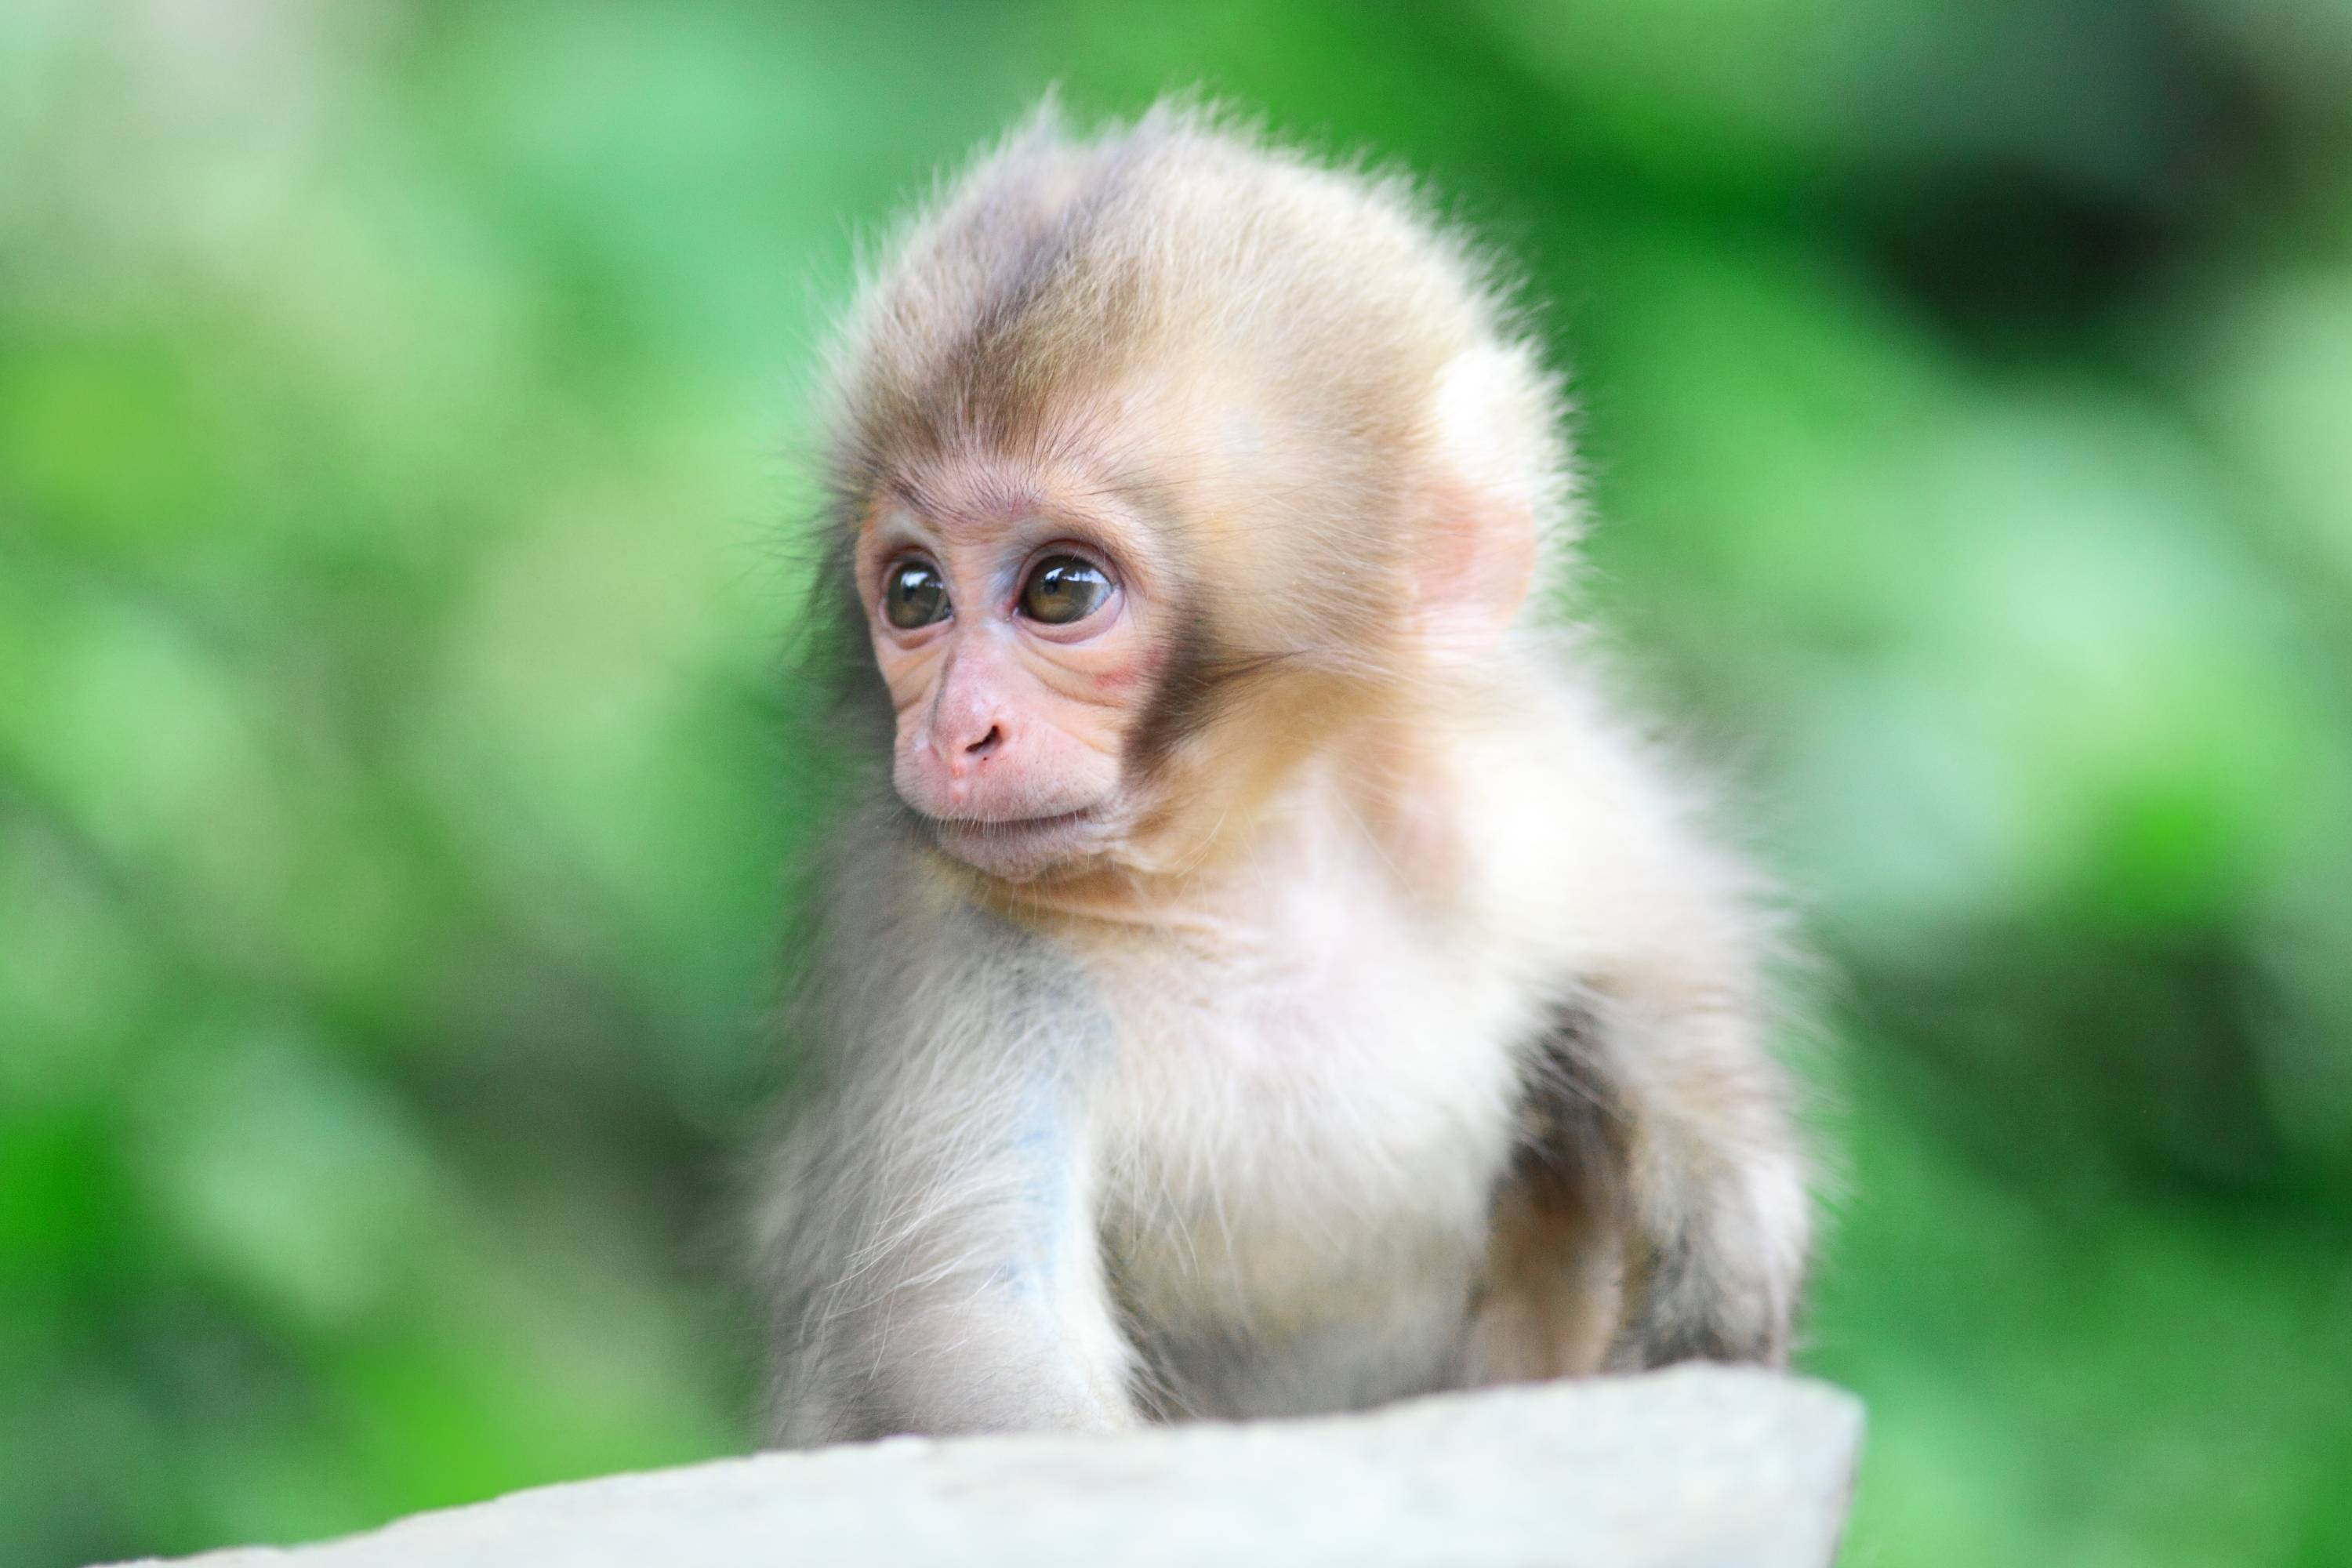 Baby Monkey Wallpapers Top Free Baby Monkey Backgrounds